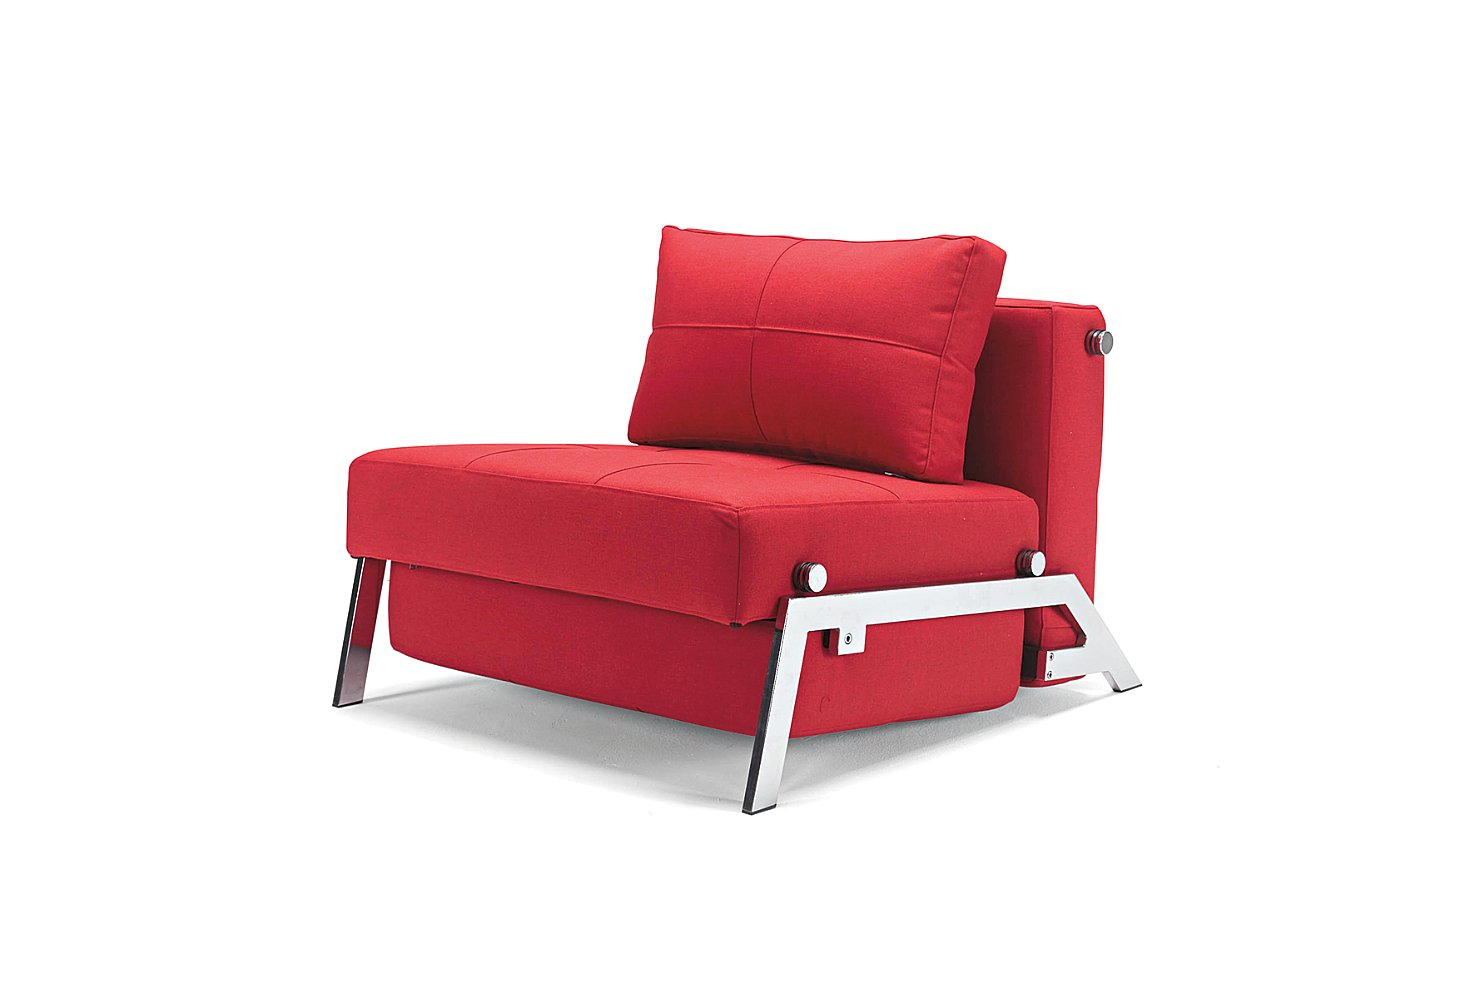 contemporary single sofa bed TAIJOLW